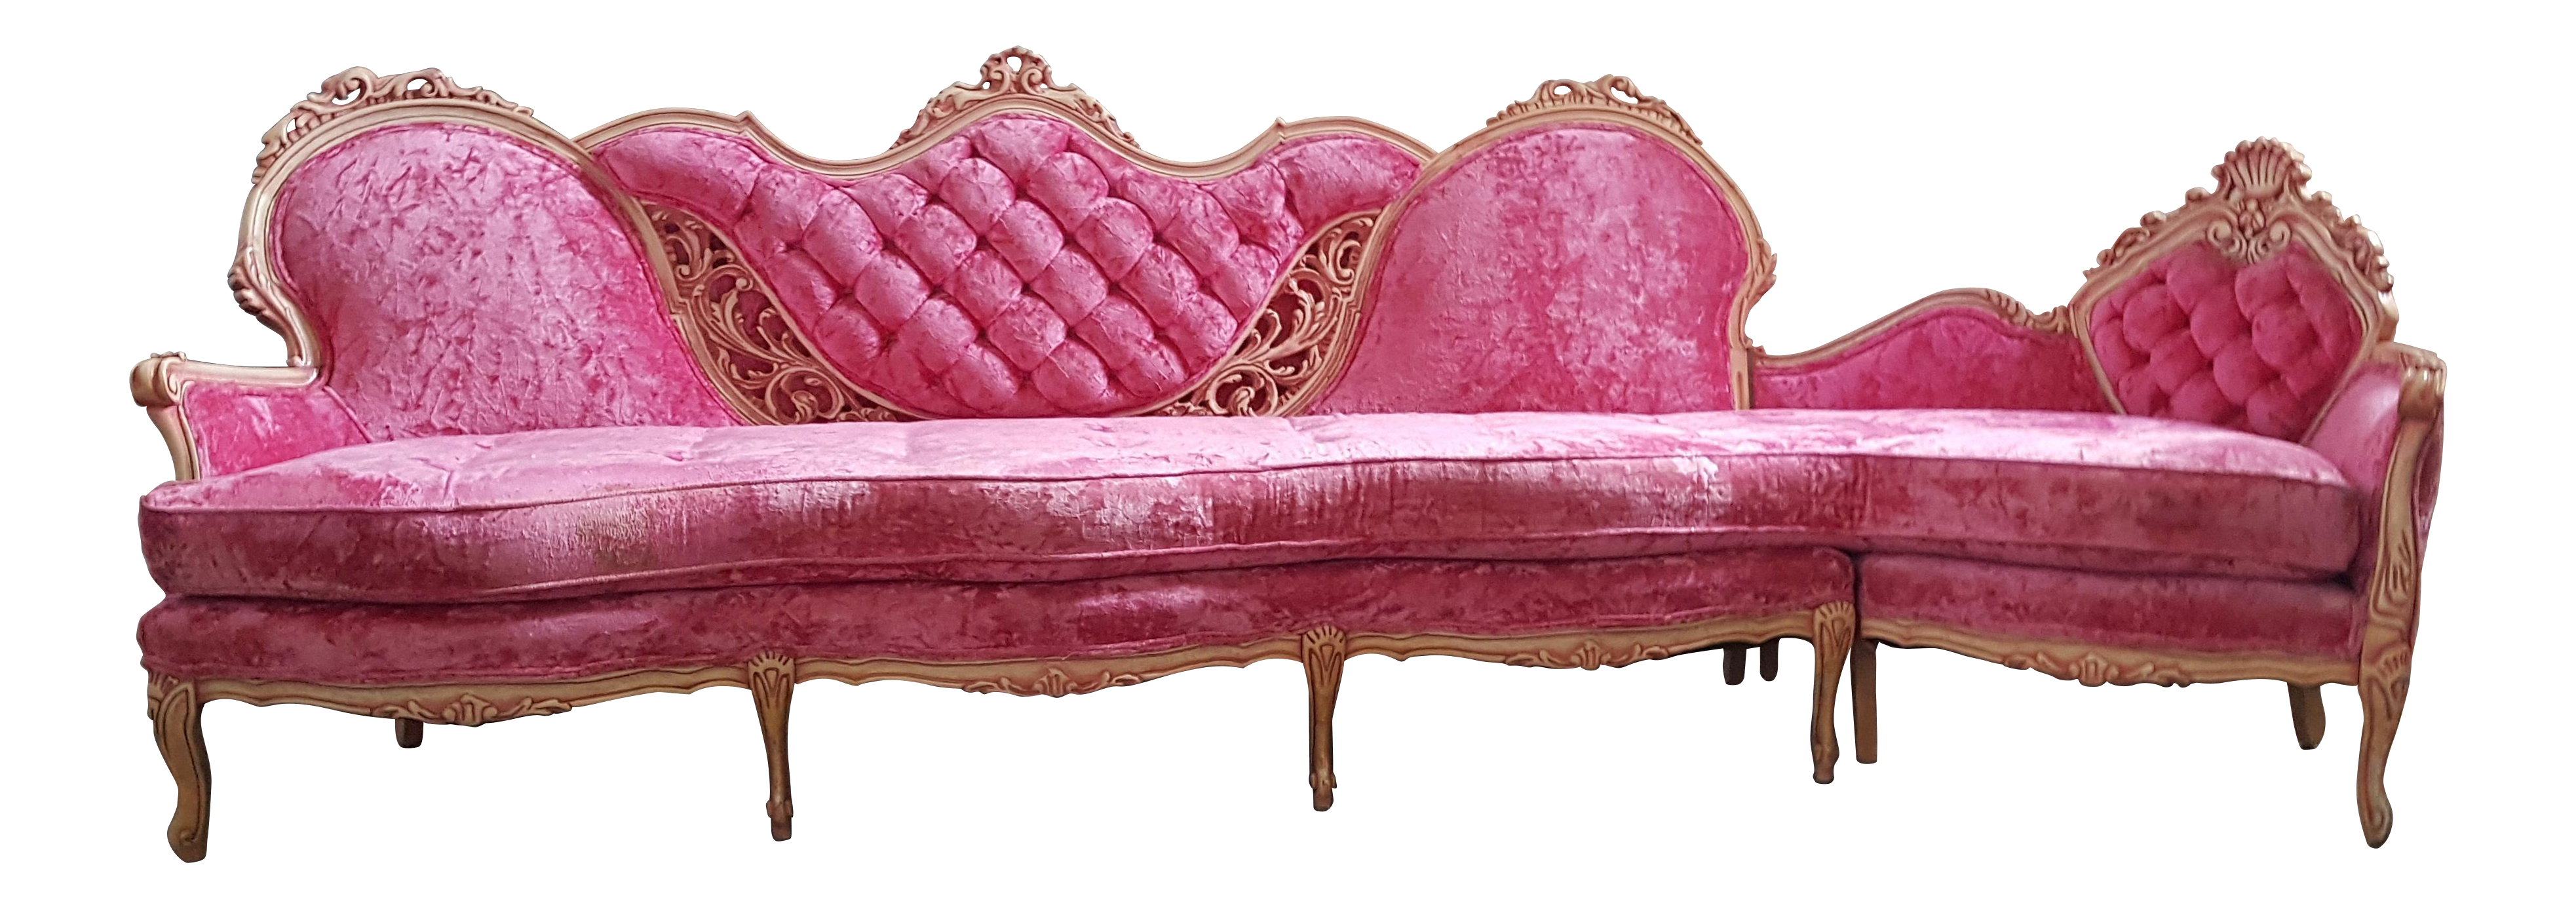 Vintage couch png. French provincial pink velvet